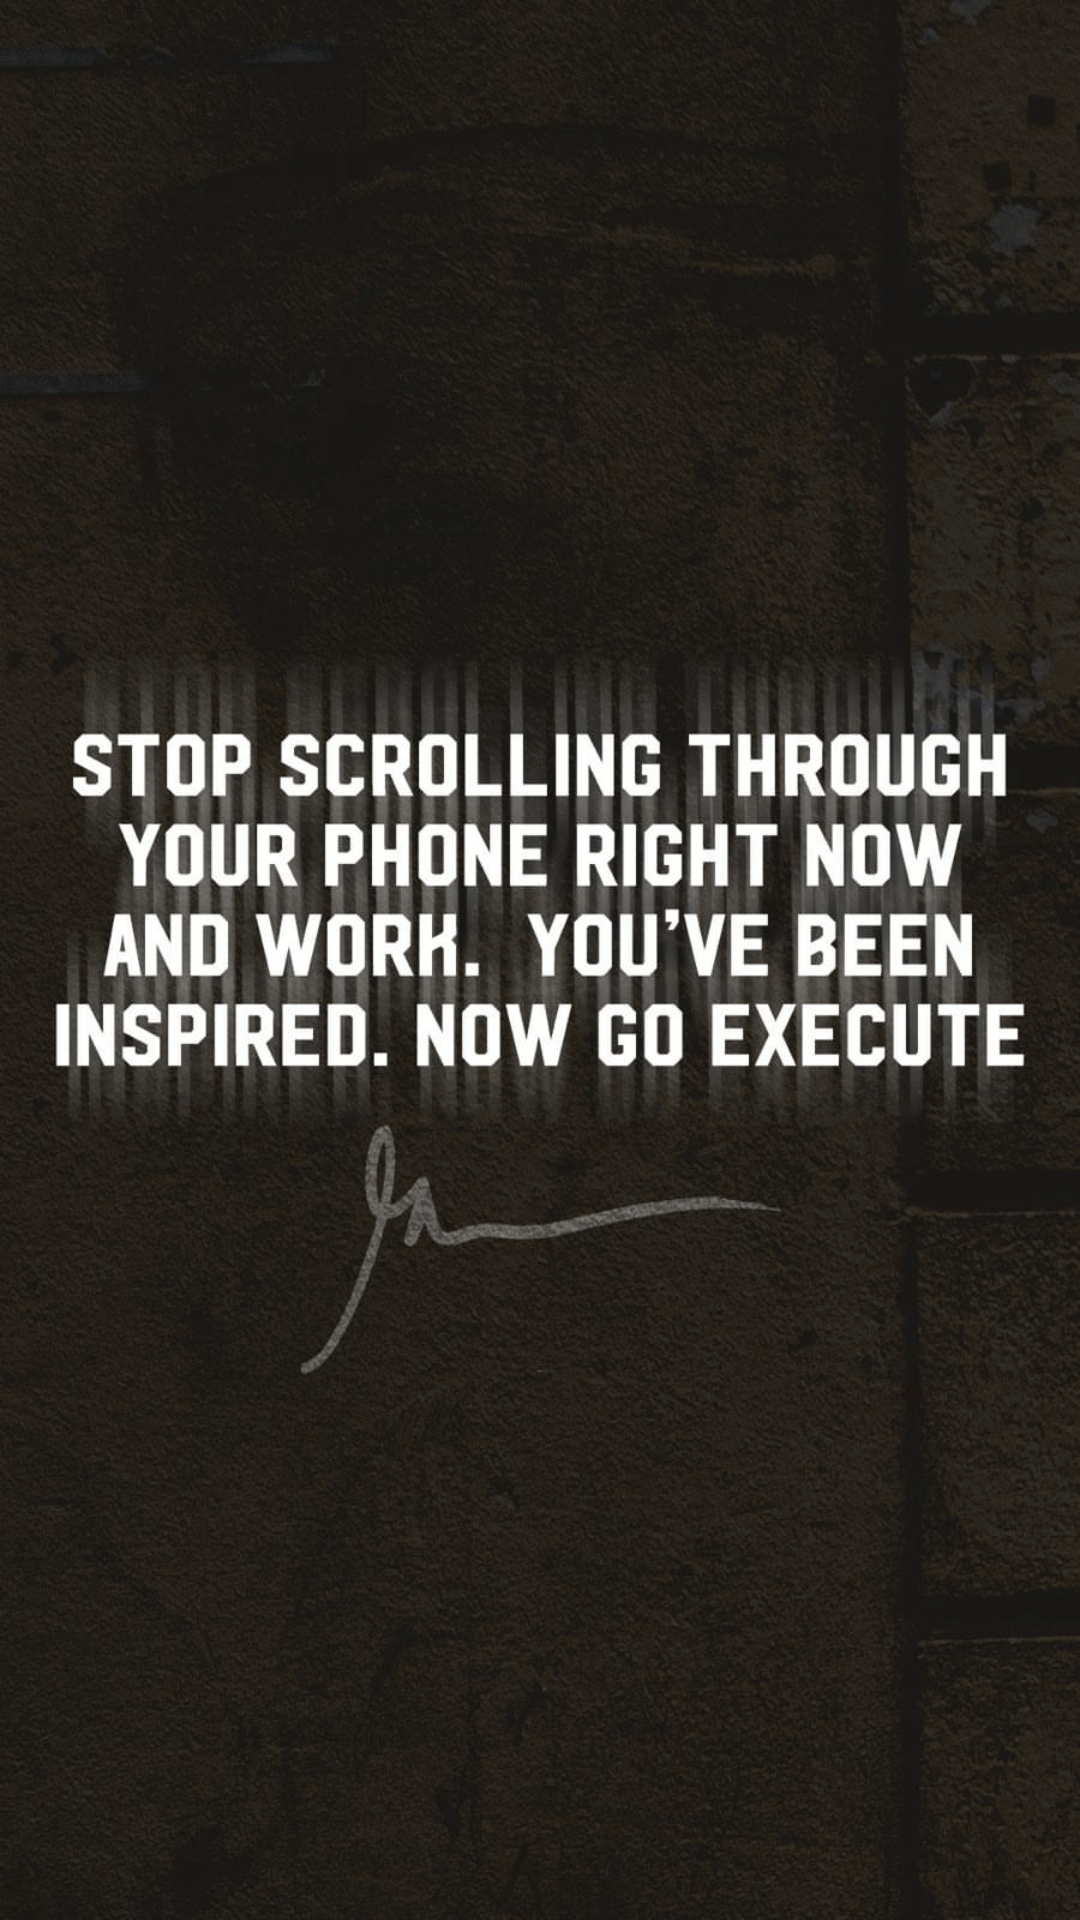 Stop Scrolling Through Your Phone Right Now And Work. You've Been Inspired. Now Go Execute Garyveewallpapers.com